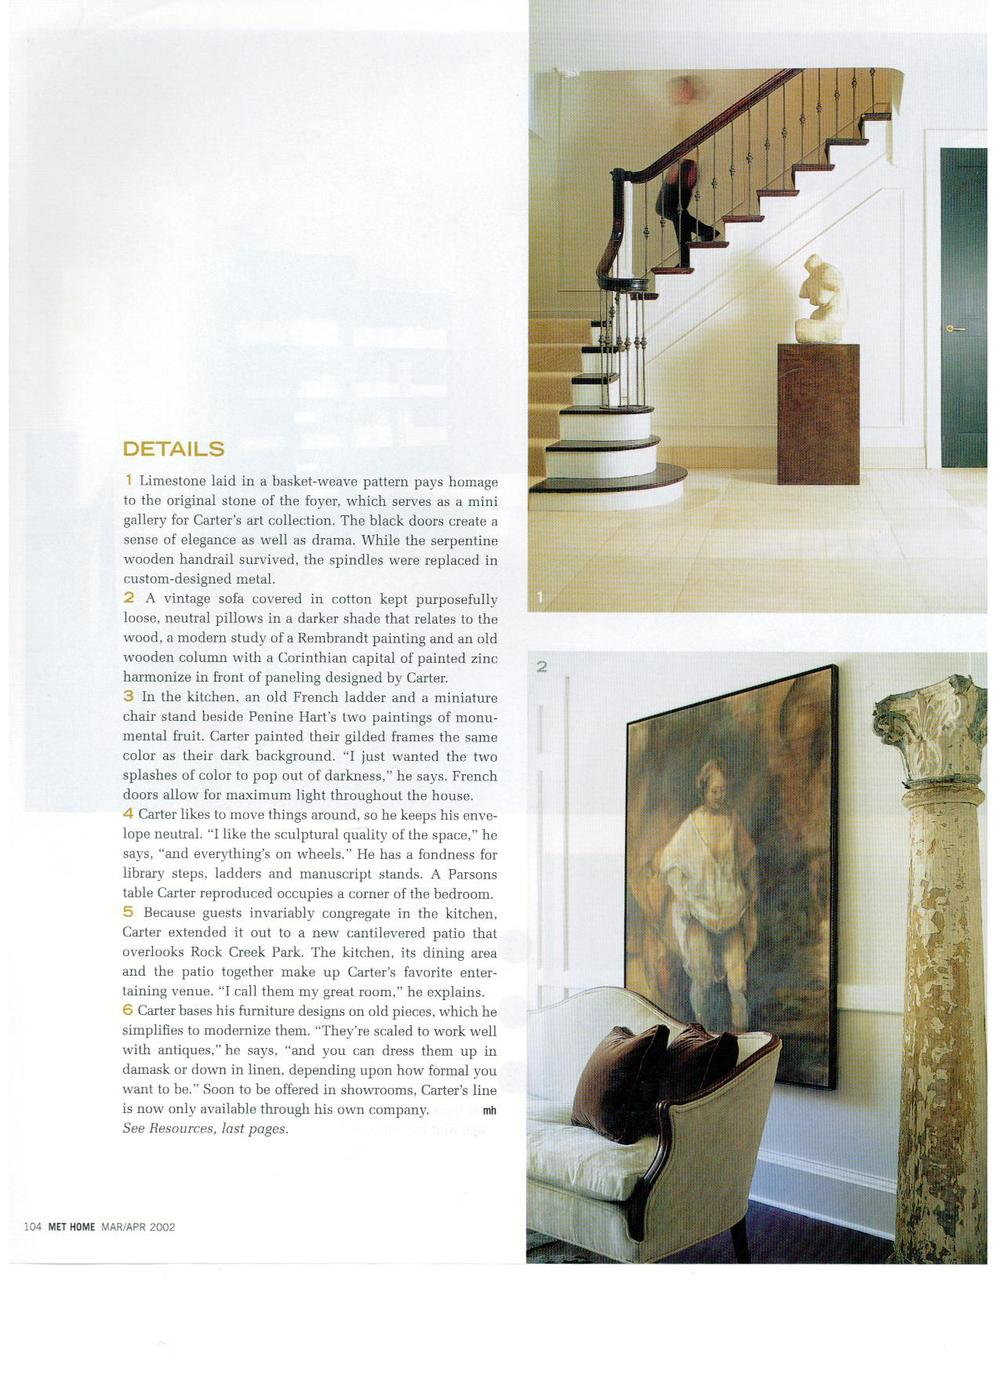 Met home Article 2002 page 10.jpg